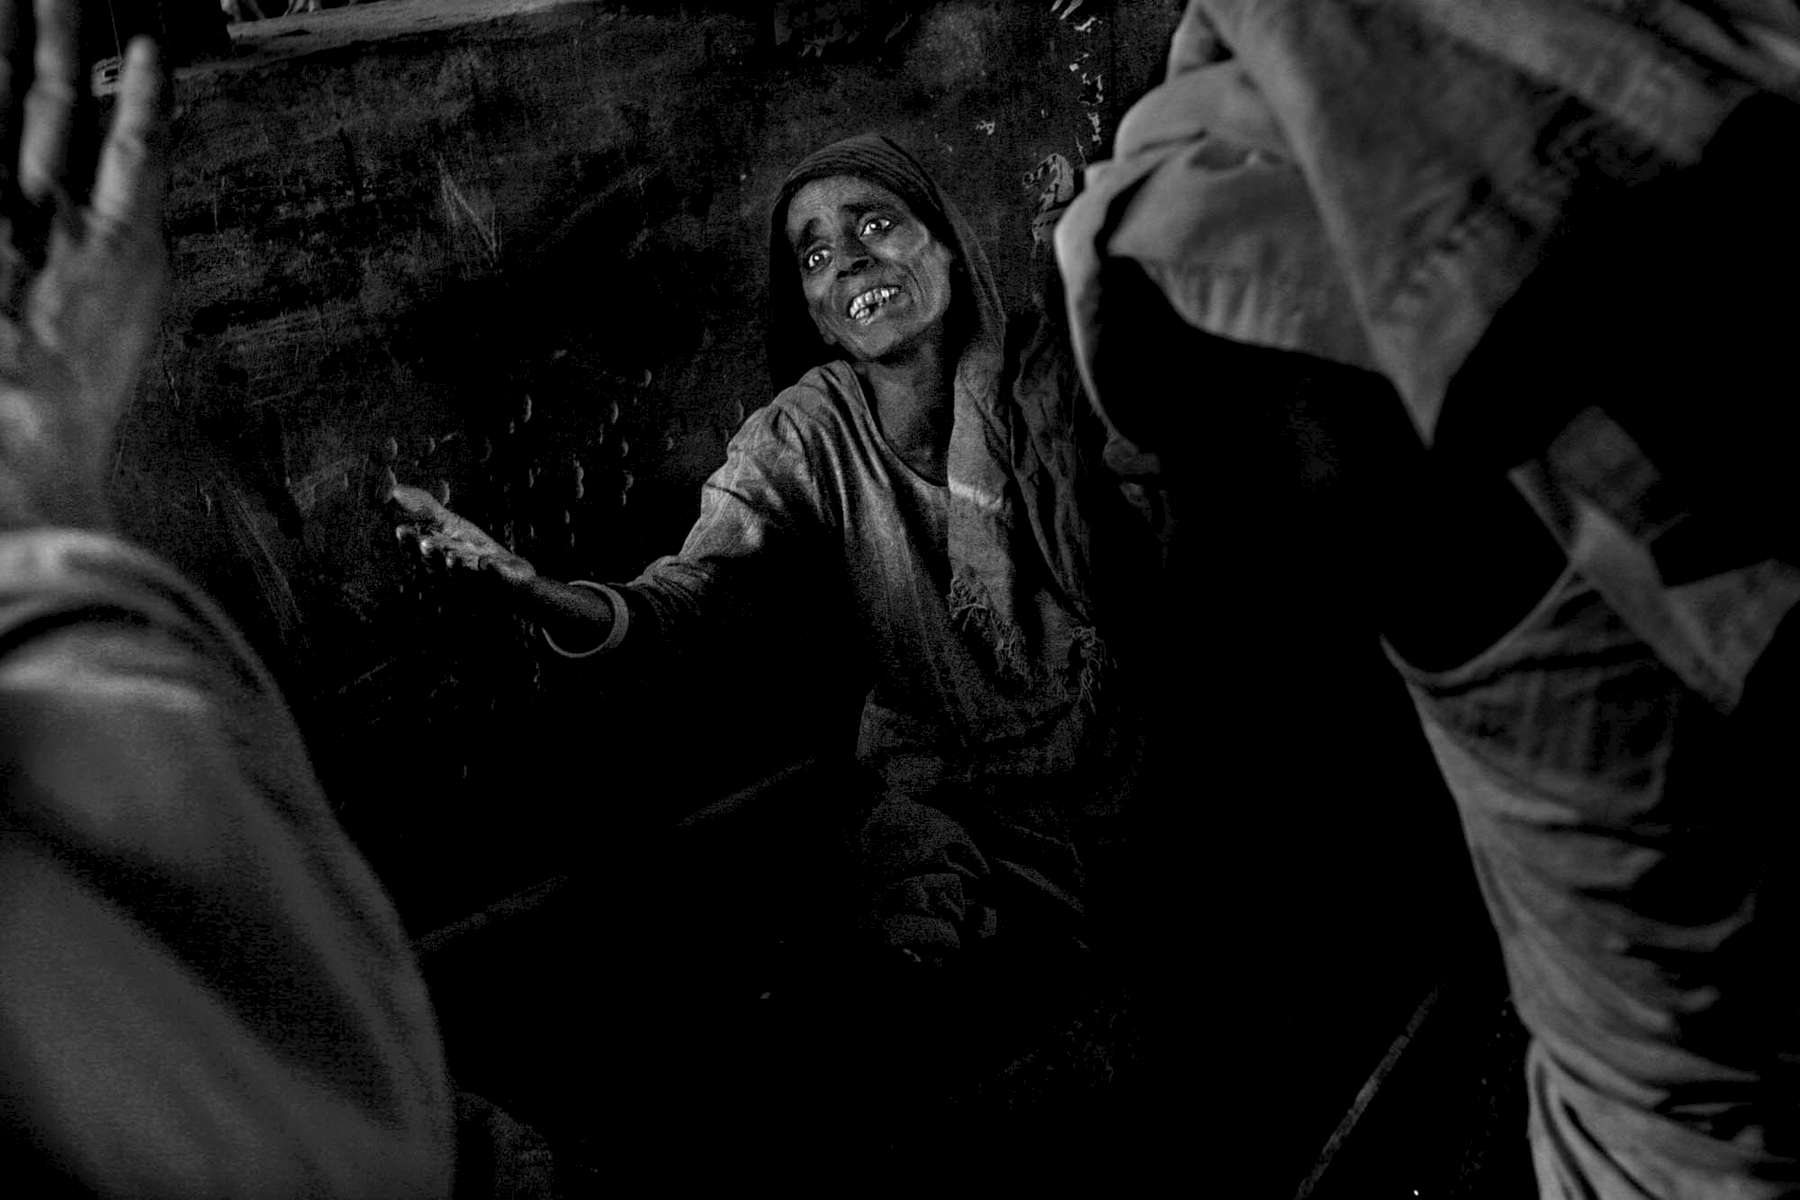 A woman cries out for assistance from a passerby under a bridge in New Delhi. Thousands of people live in blinding povertyi n the capital city.